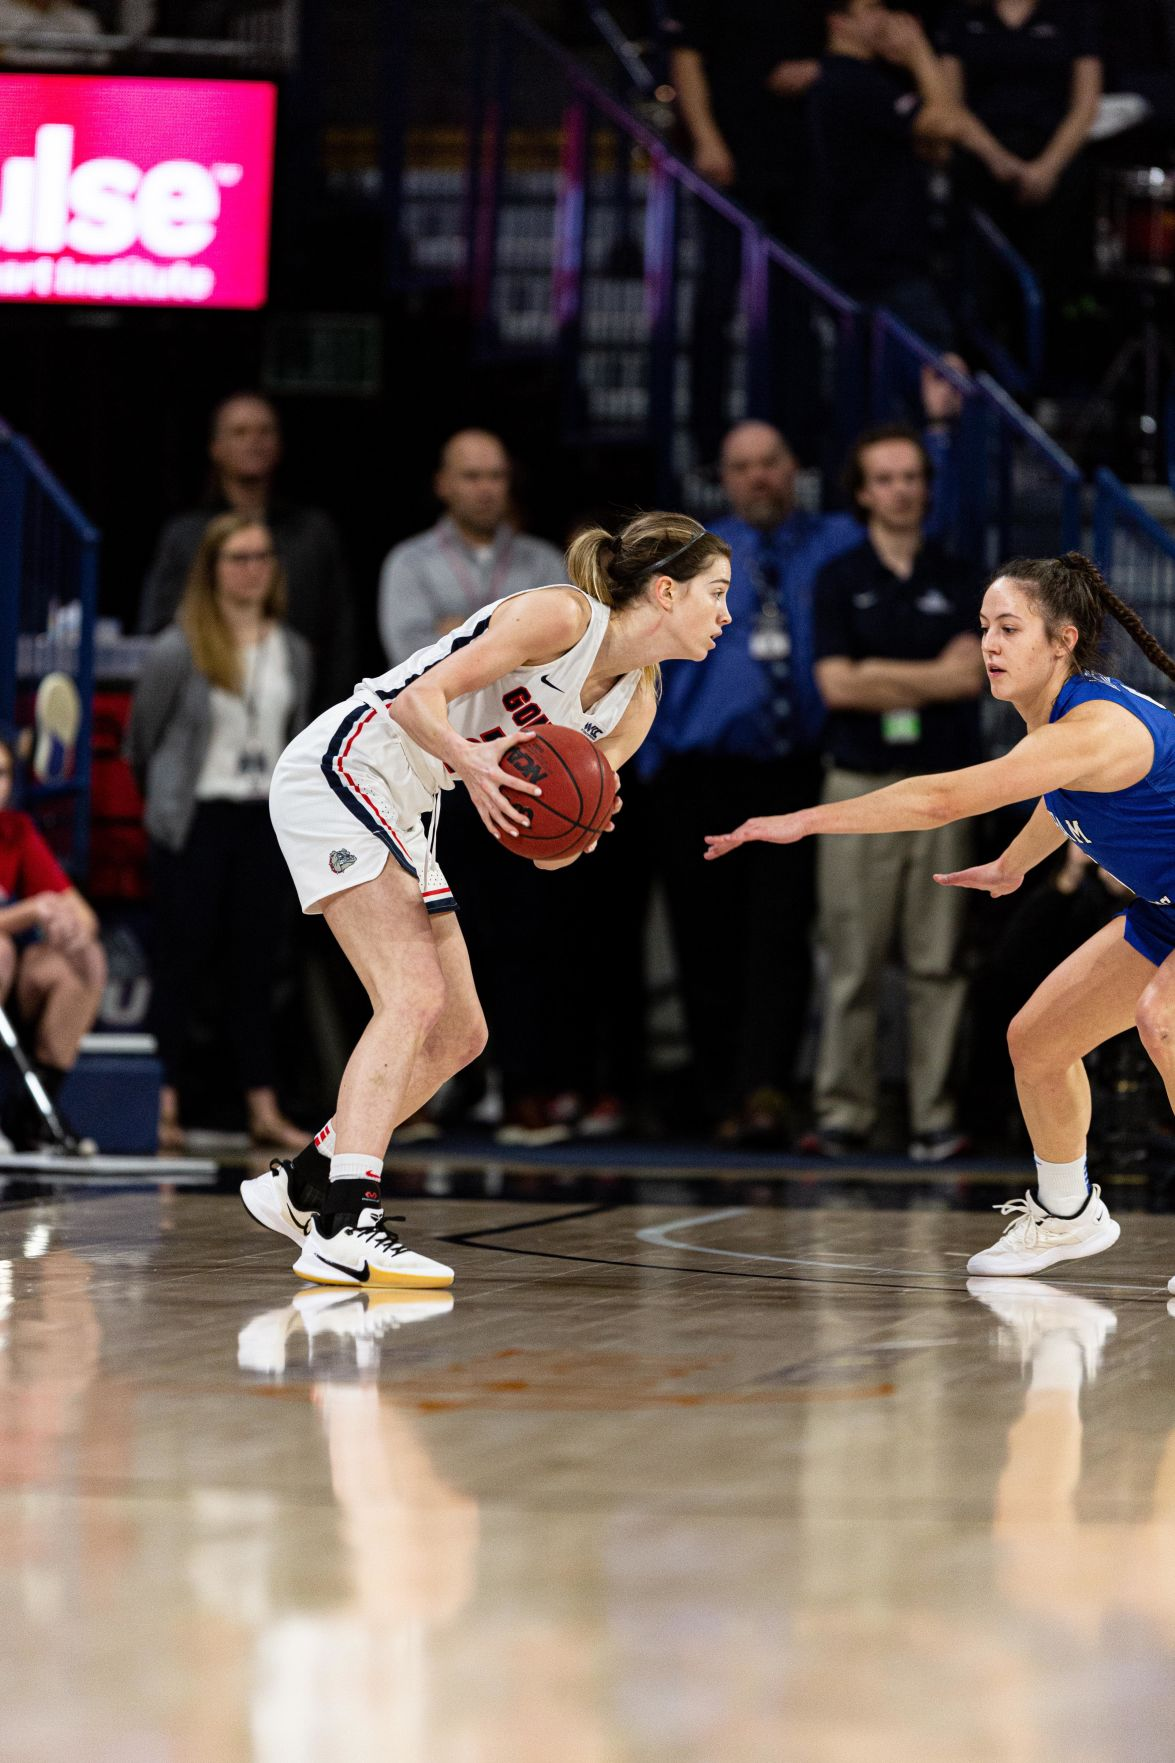 Gonzaga women's basketball remains undefeated in WCC vs. BYU